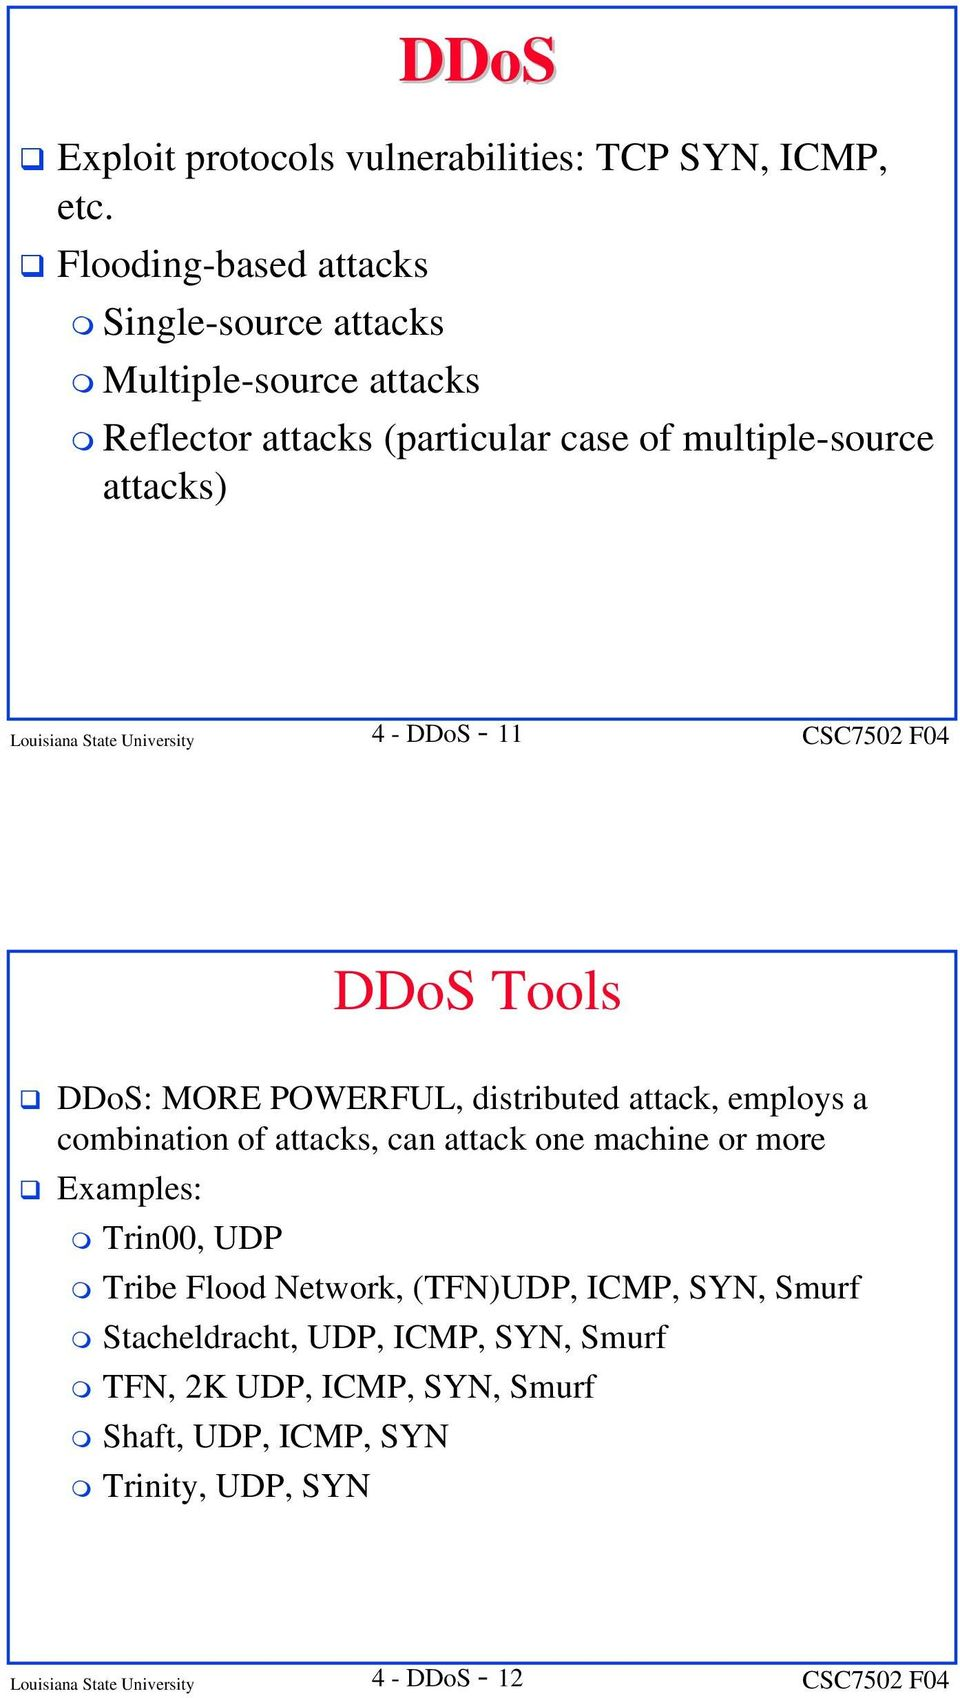 State University 4 - DDoS - 11 DDoS Tools DDoS: MORE POWERFUL, distributed attack, employs a combination of attacks, can attack one machine